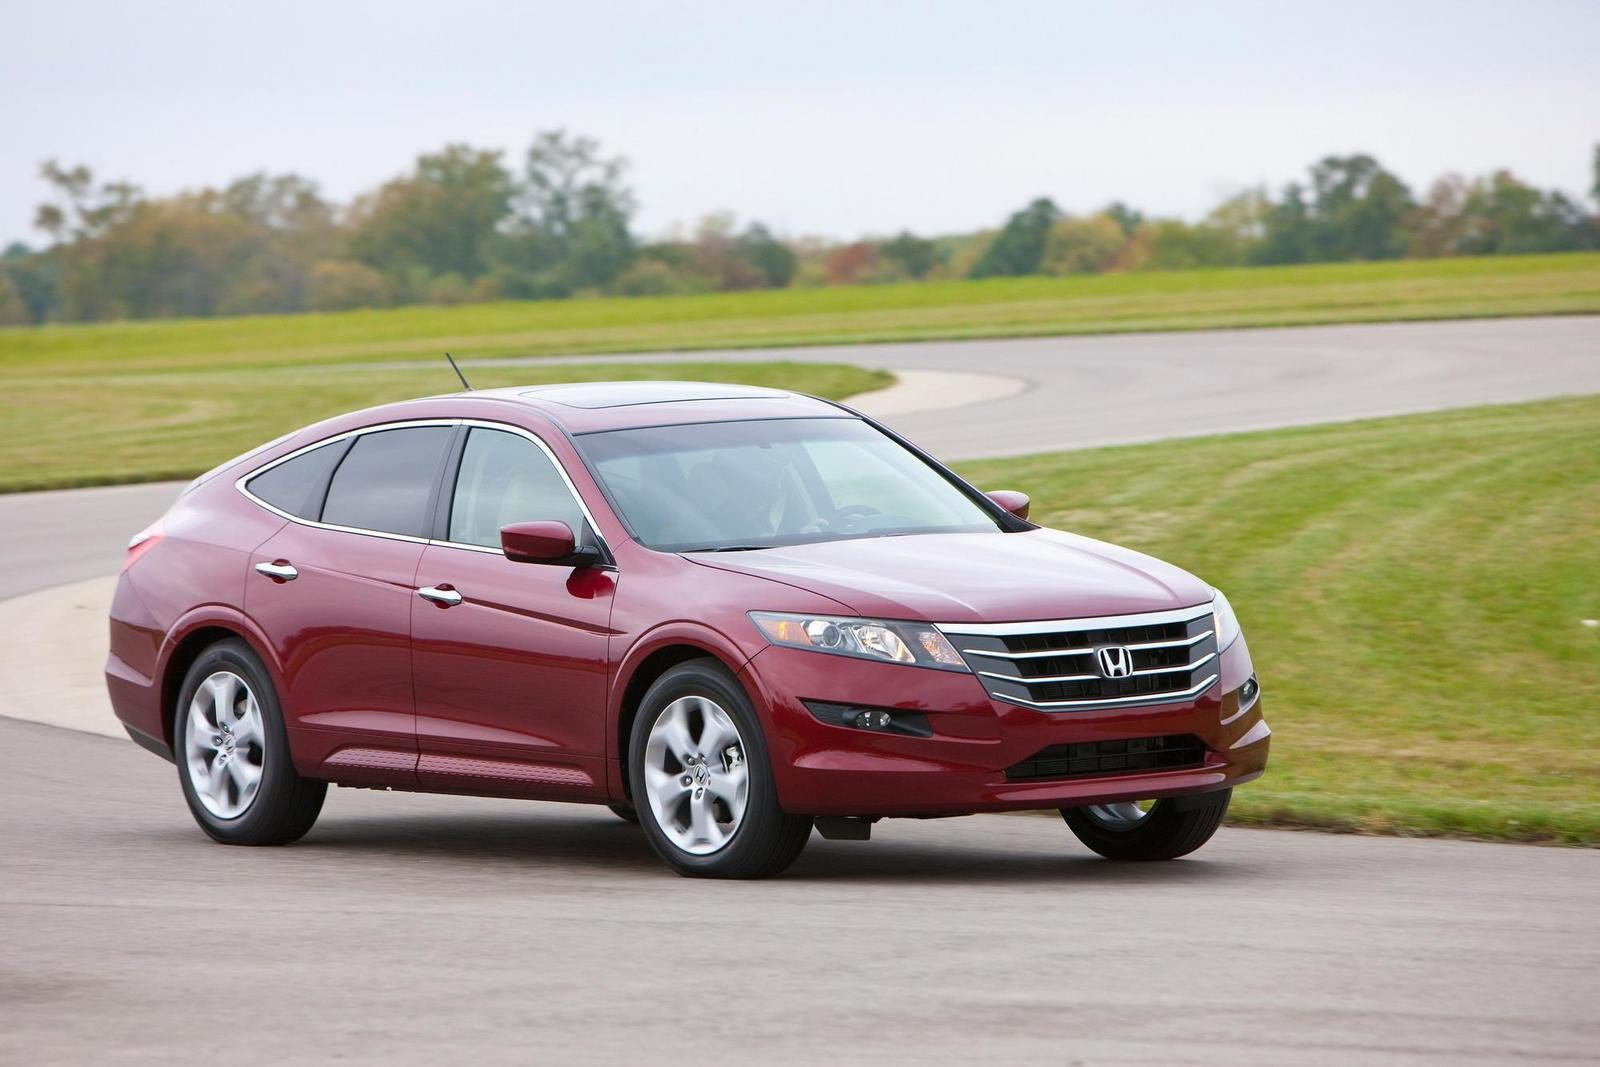 2010 honda accord crosstour picture 335891 car review. Black Bedroom Furniture Sets. Home Design Ideas